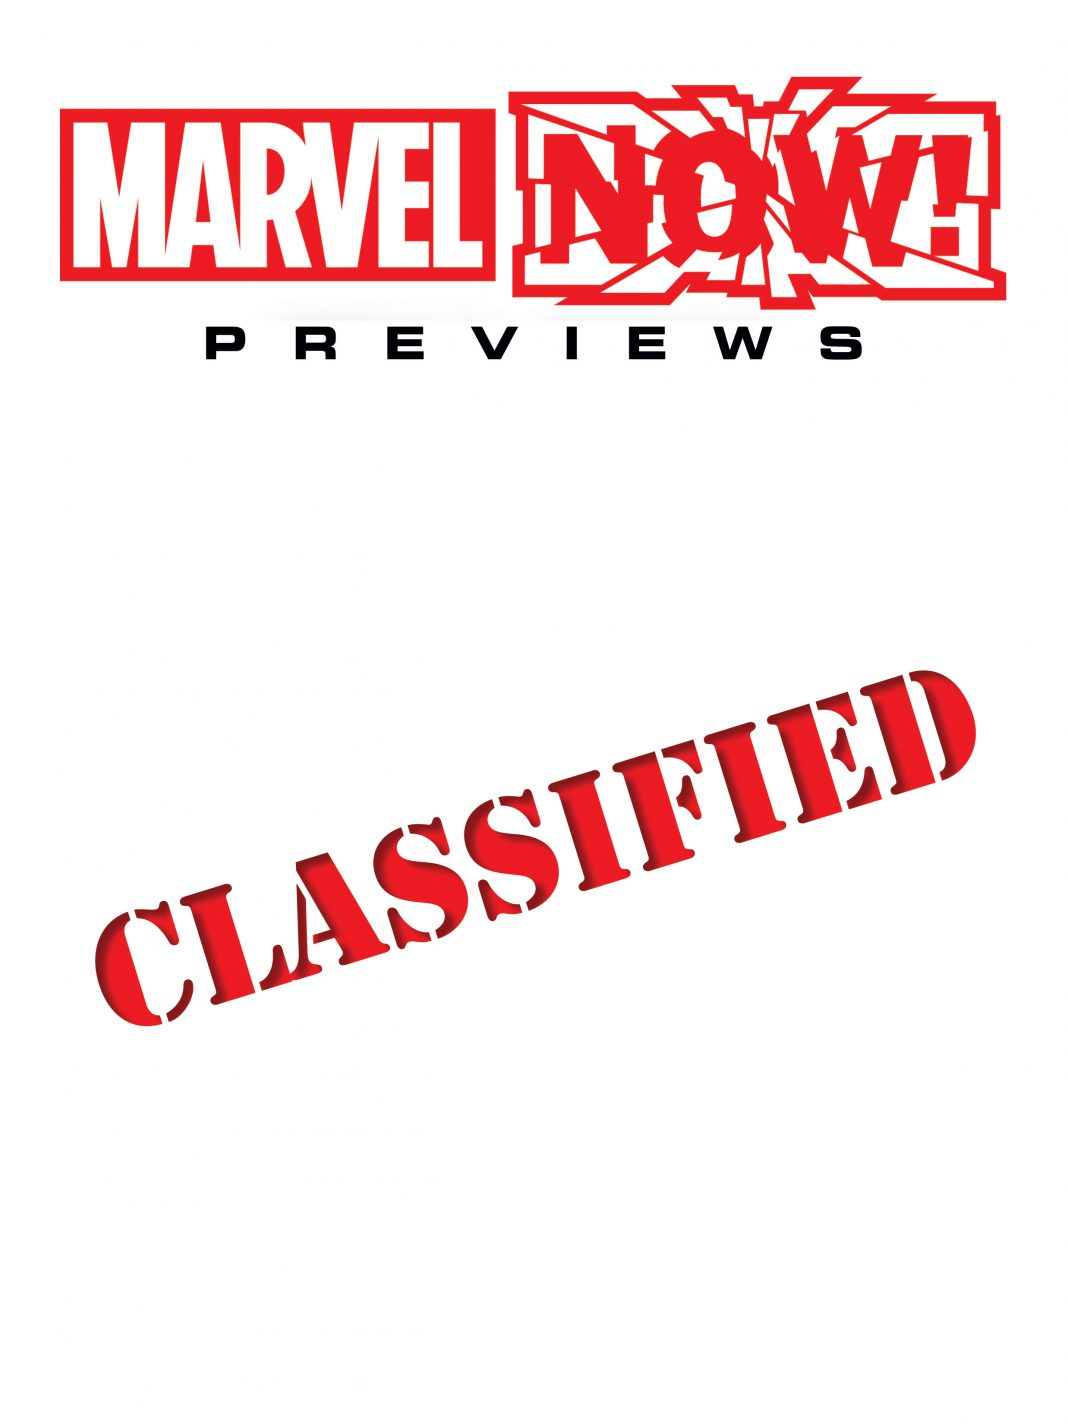 MARVEL NOW! Begins at Midnight on July 13th!!